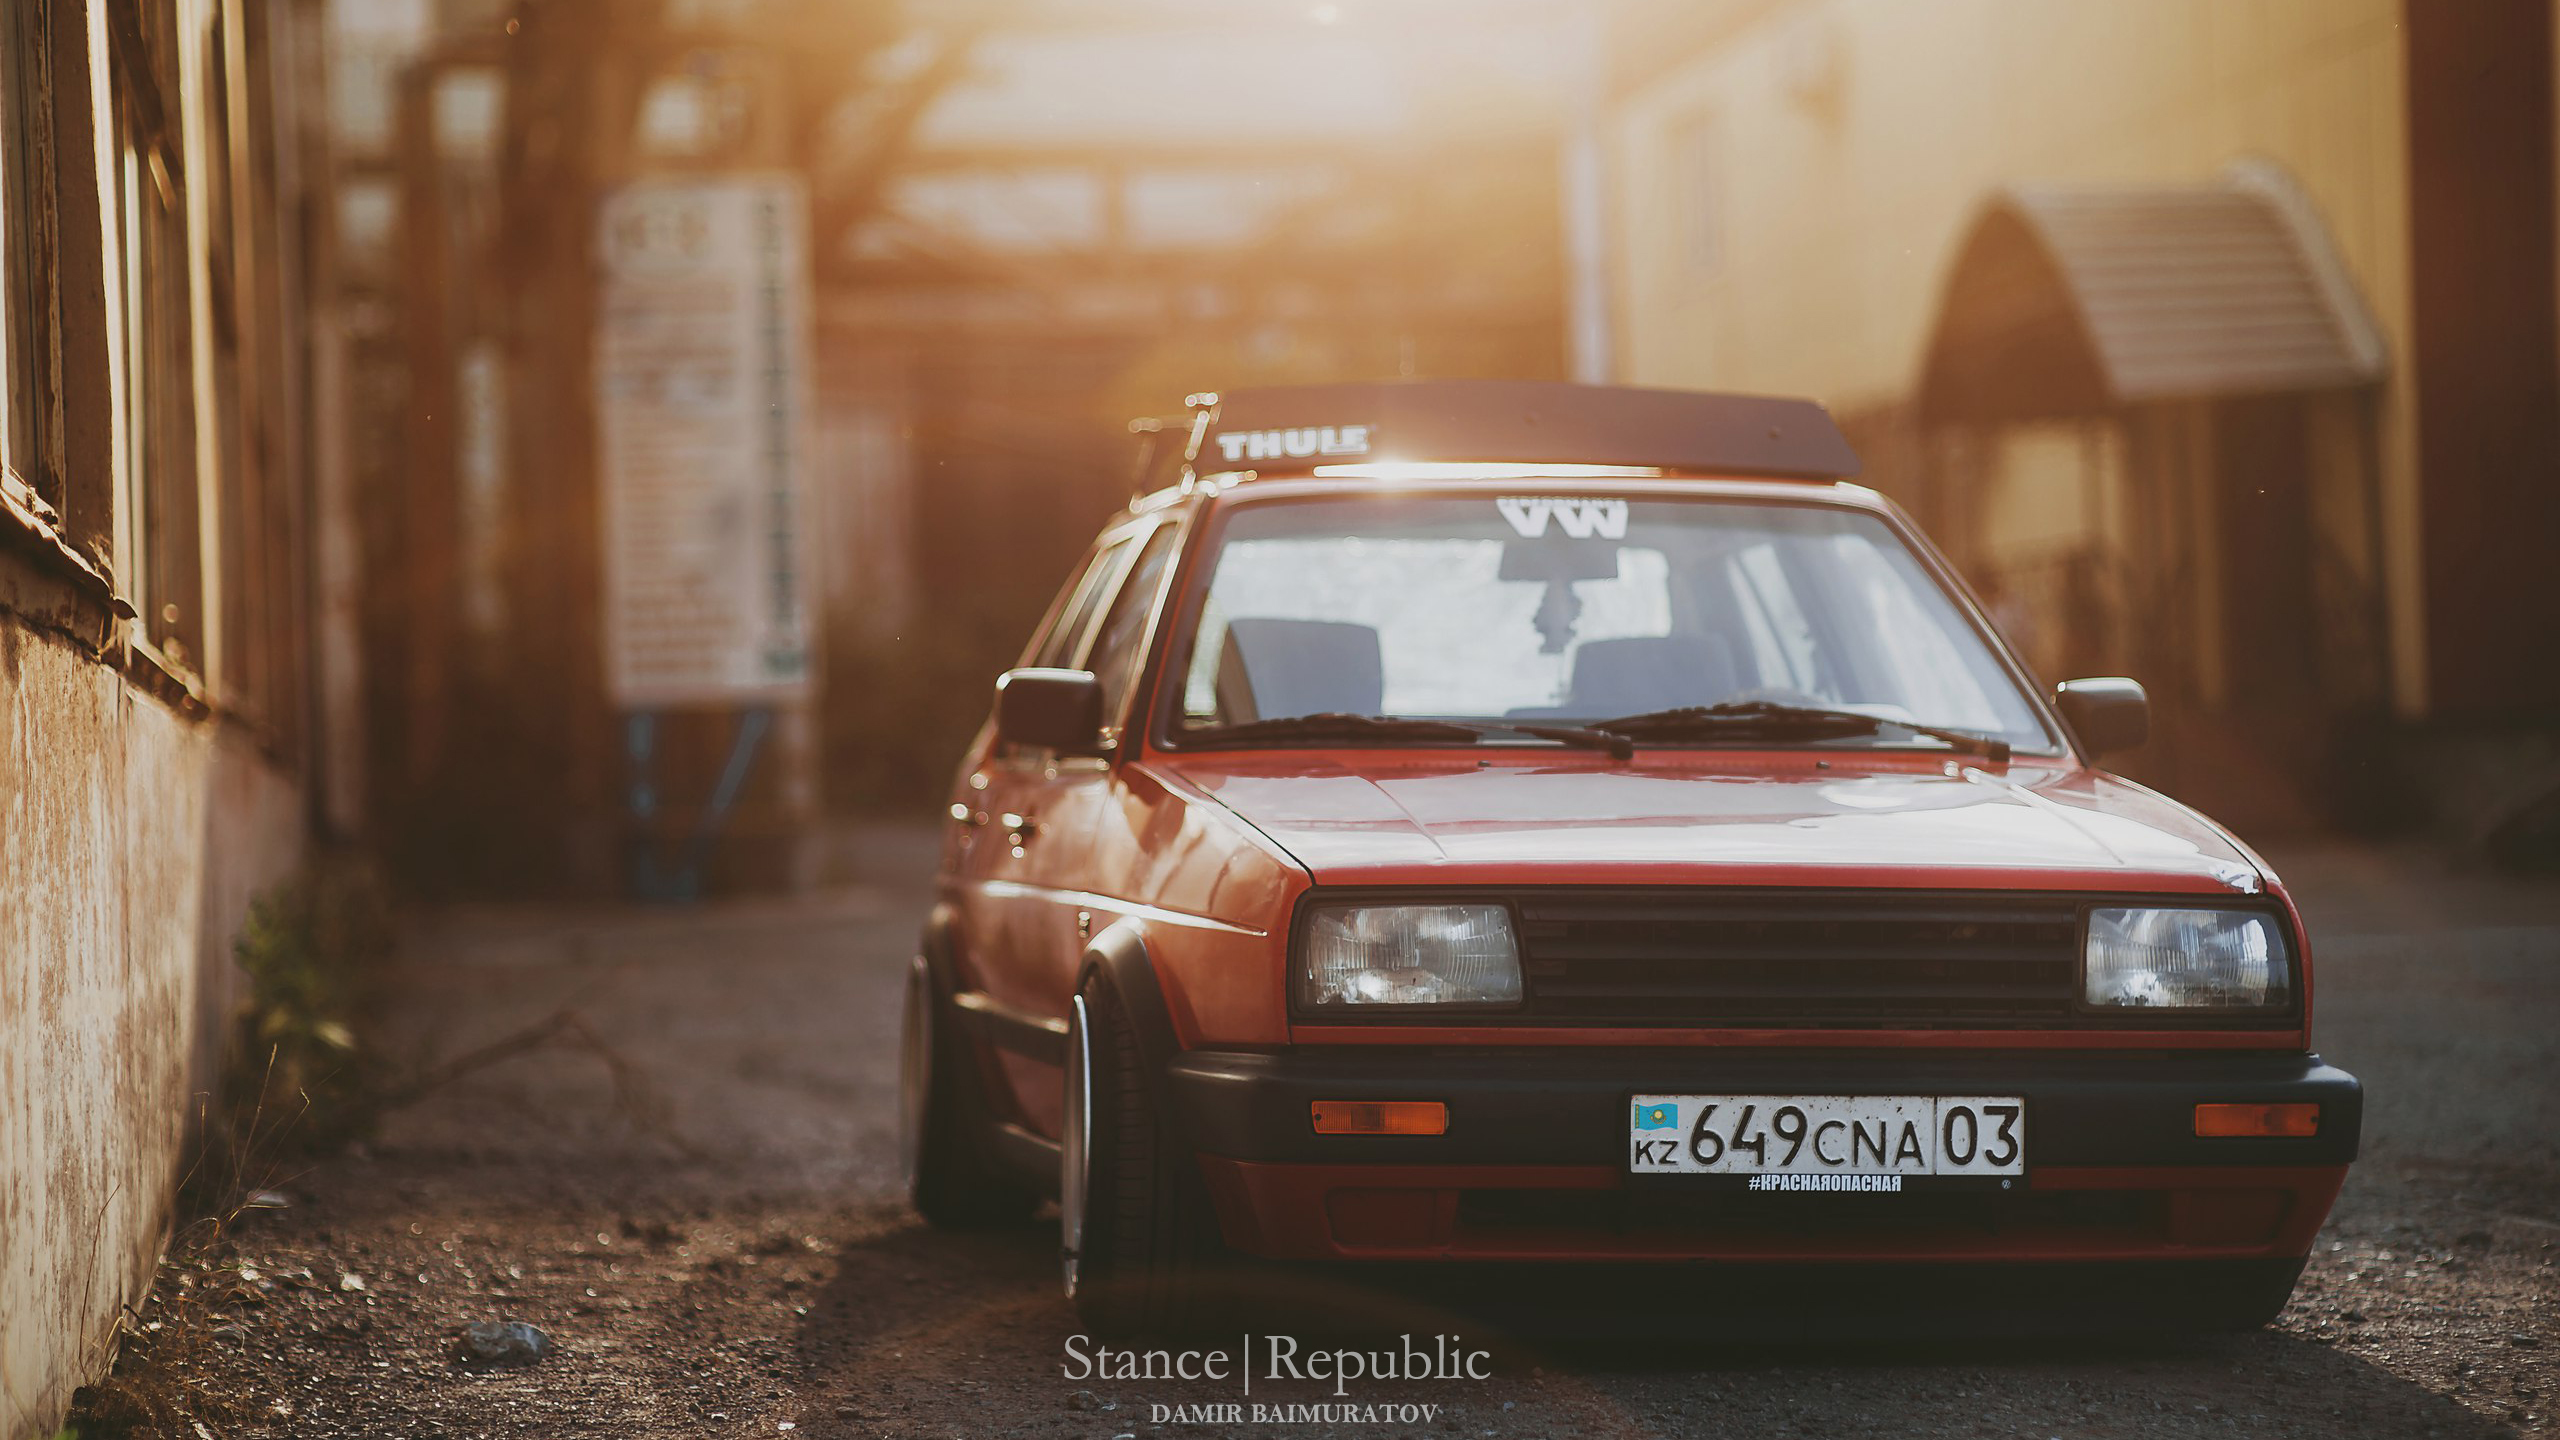 Wallpaper Jetta Mk2 2 My CMS 2560x1440